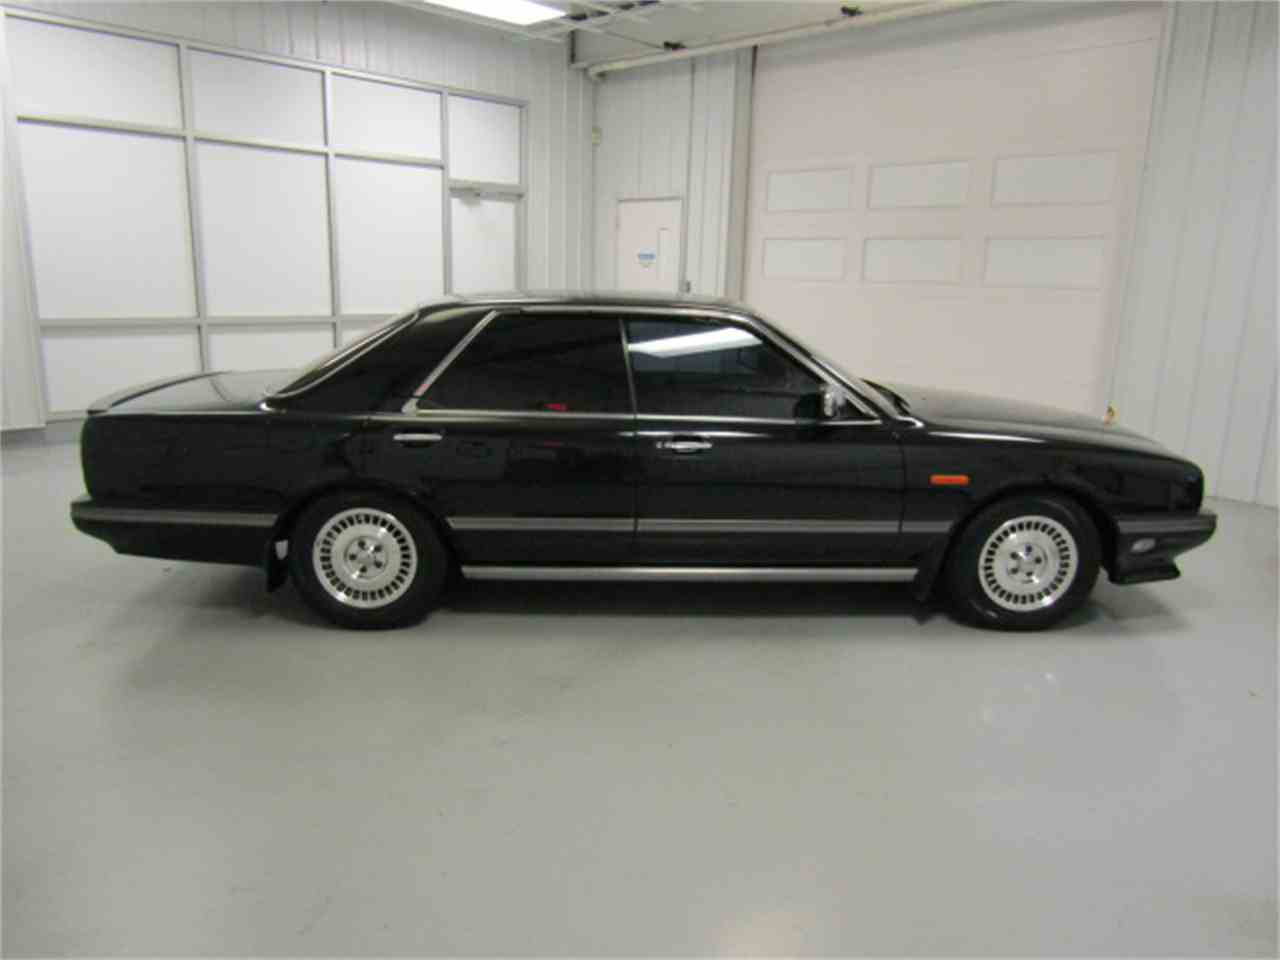 Large Picture of 1990 Nissan Cima located in Christiansburg Virginia Offered by Duncan Imports & Classic Cars - JLDM